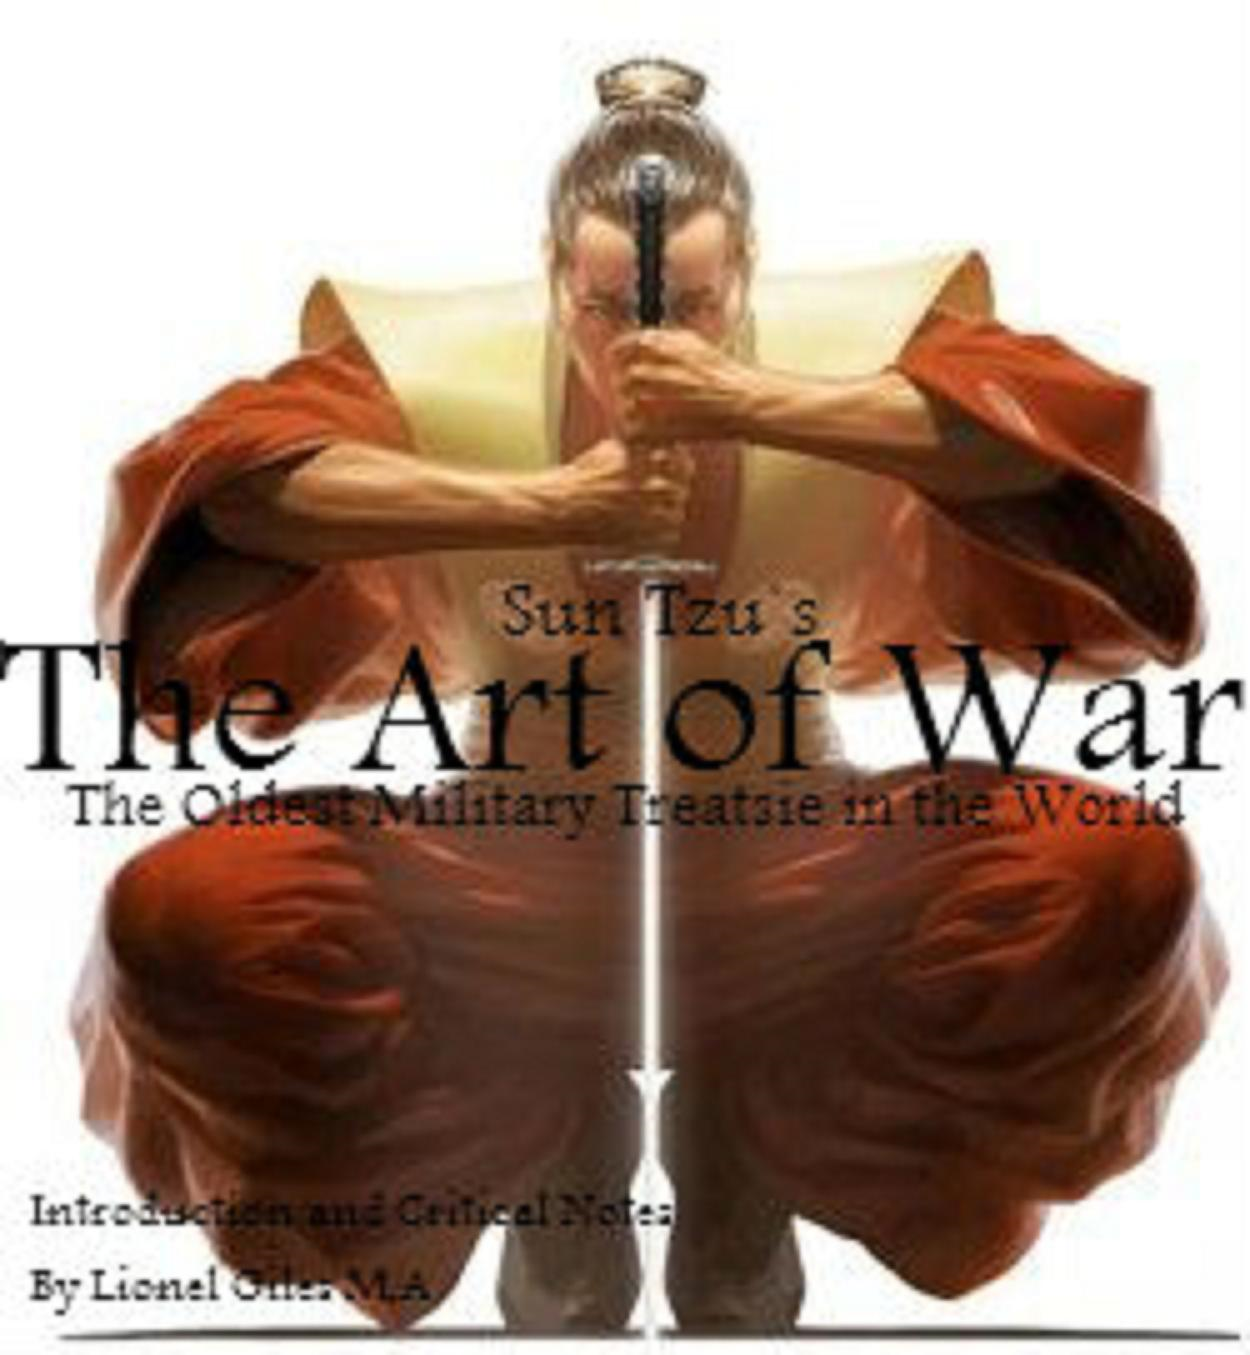 Sun Tzu The Oldest Military Treatise in the World By: Sun Tzu